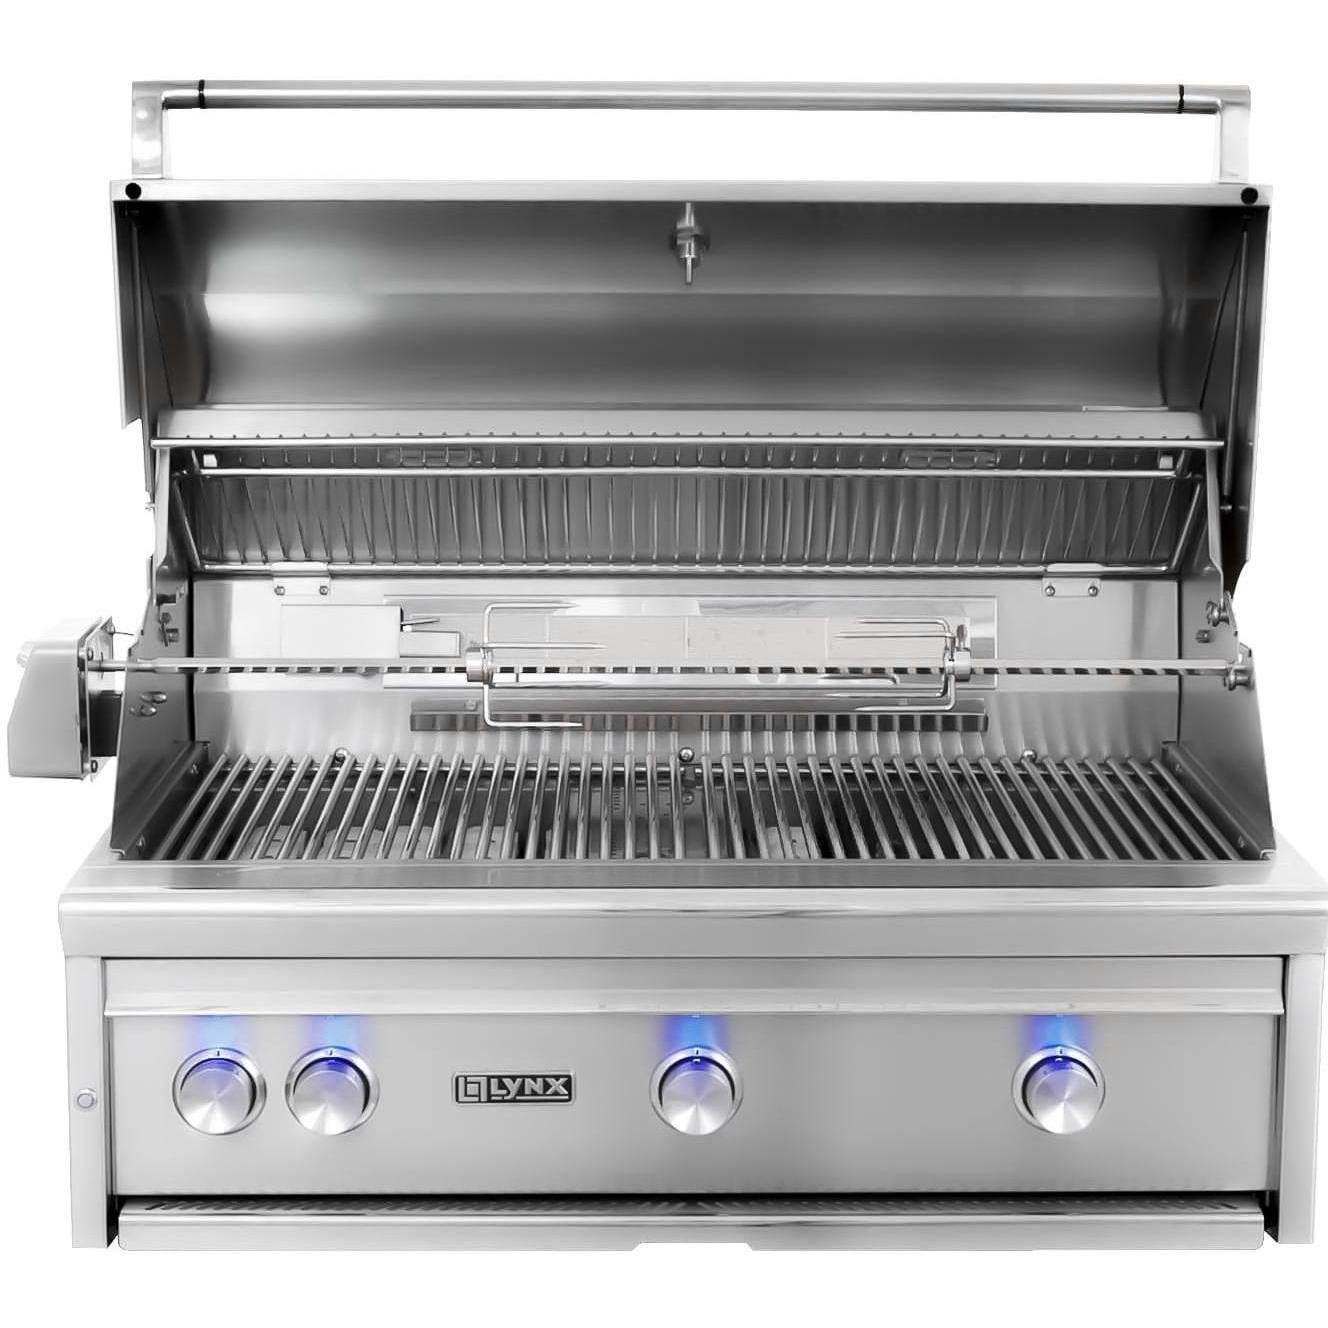 c5d28628bff06104be42550e0f7eacf3?i10c=img.resize.fit(width 1000height 1000bordercolor '0xffffff') lynx lynx gas grills 36 inch built in natural gas grill with  at edmiracle.co